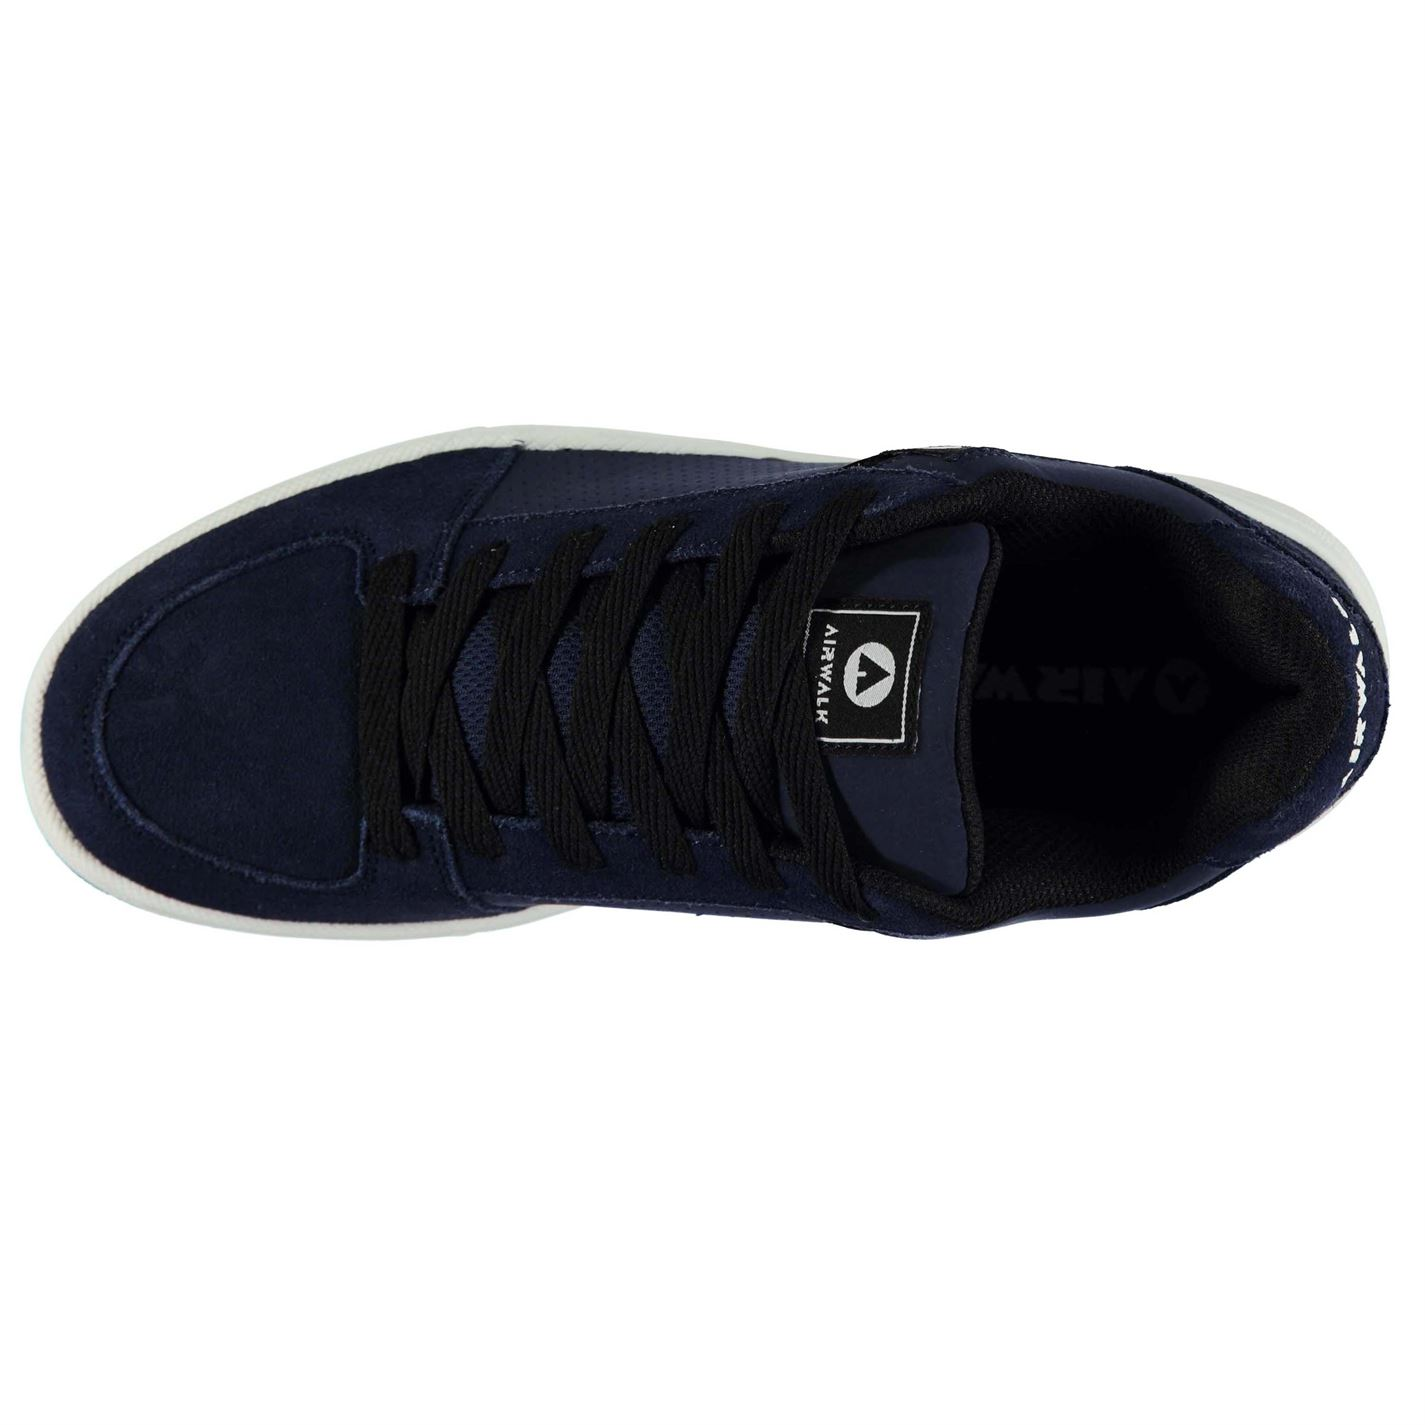 Airwalk-Mens-Brock-Skate-Shoes-Lace-Up-Suede-Accents-Sport-Casual-Trainers thumbnail 29